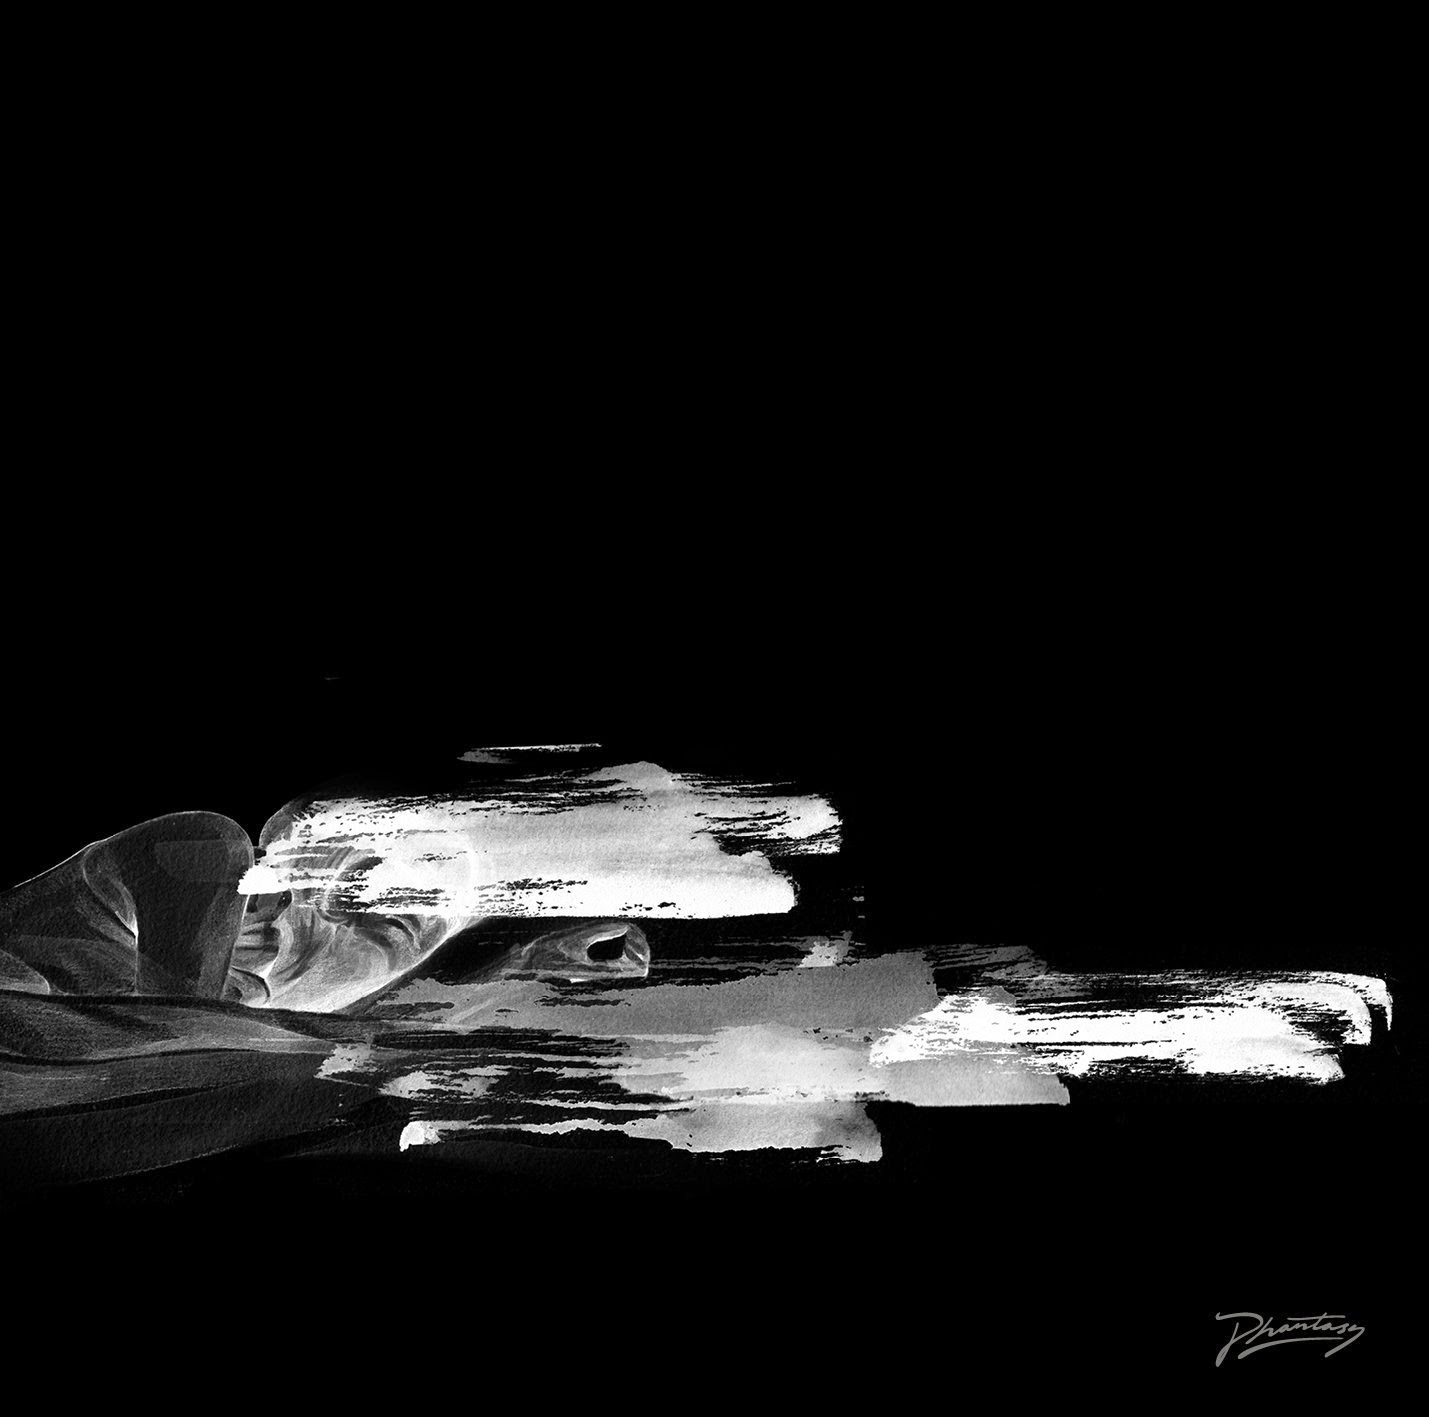 New energy (collected remix) - Daniel Avery - Because music.